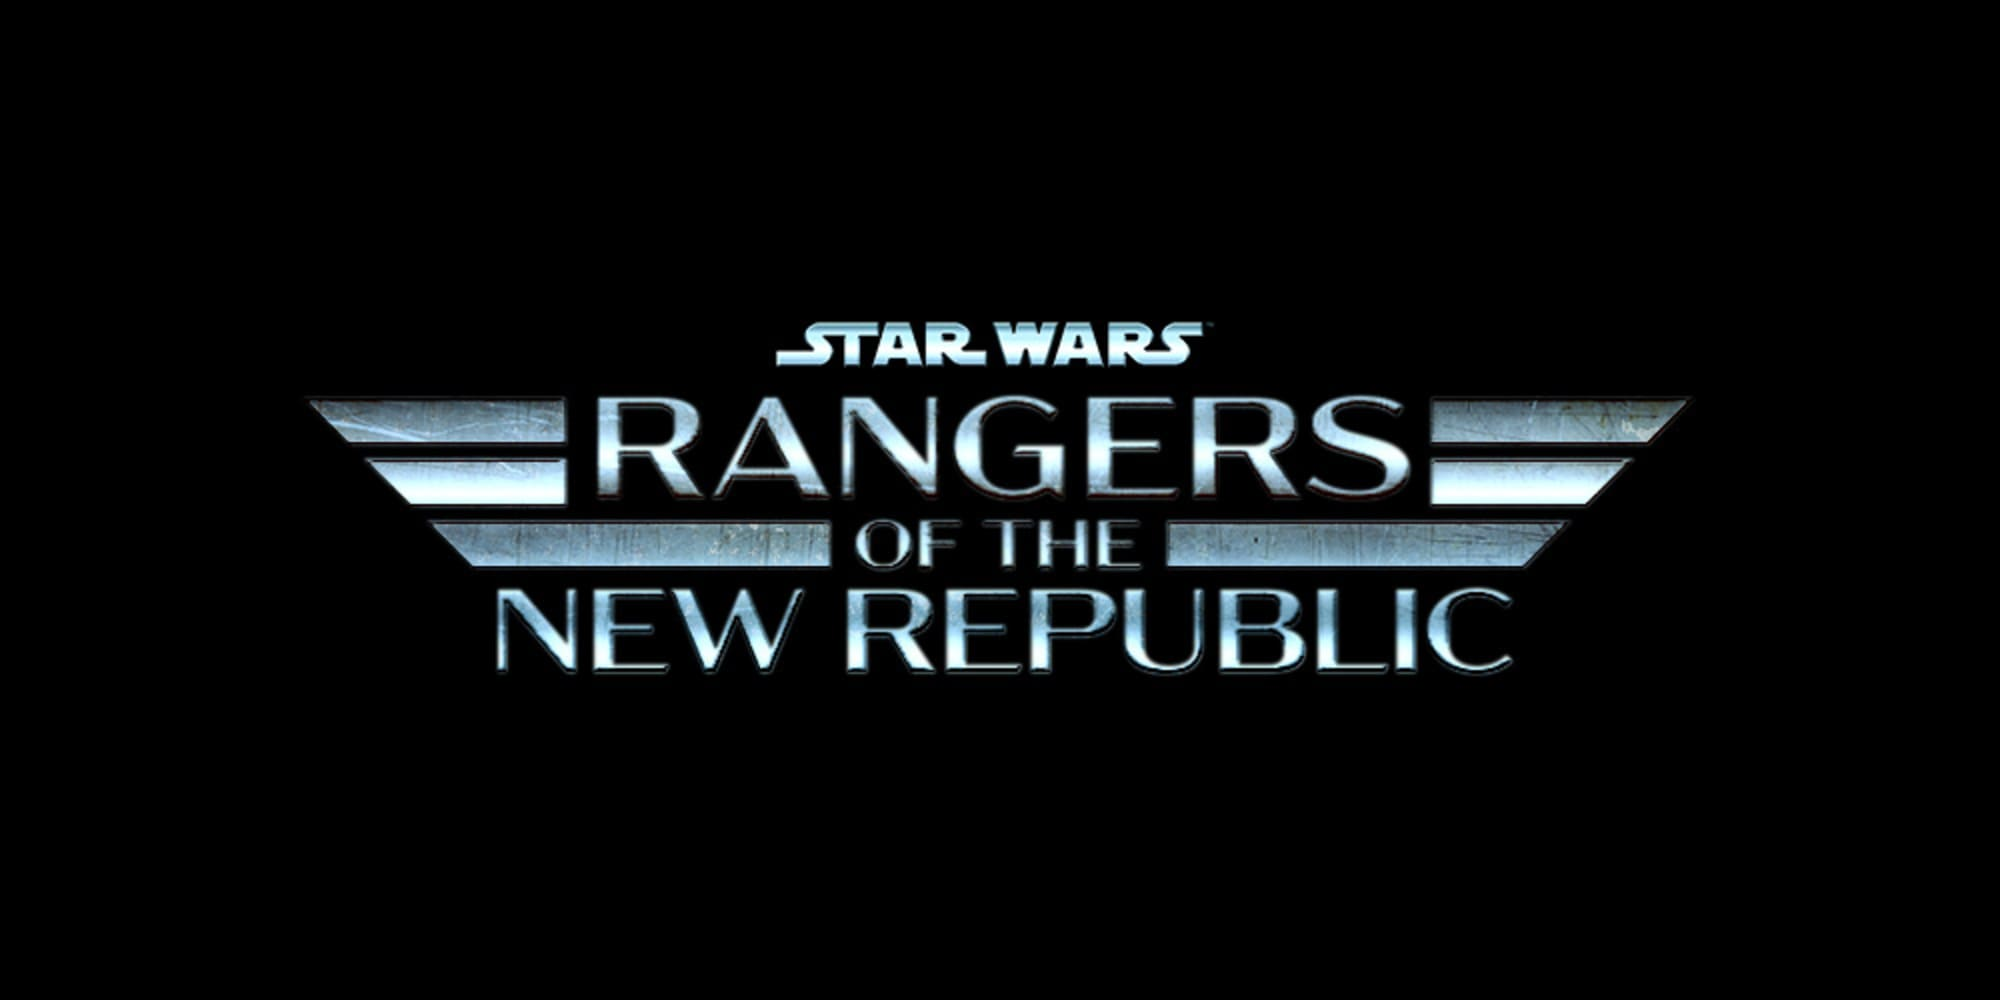 Rangers Of The New Republic: Will Gina Carano Be Allowed To Star?